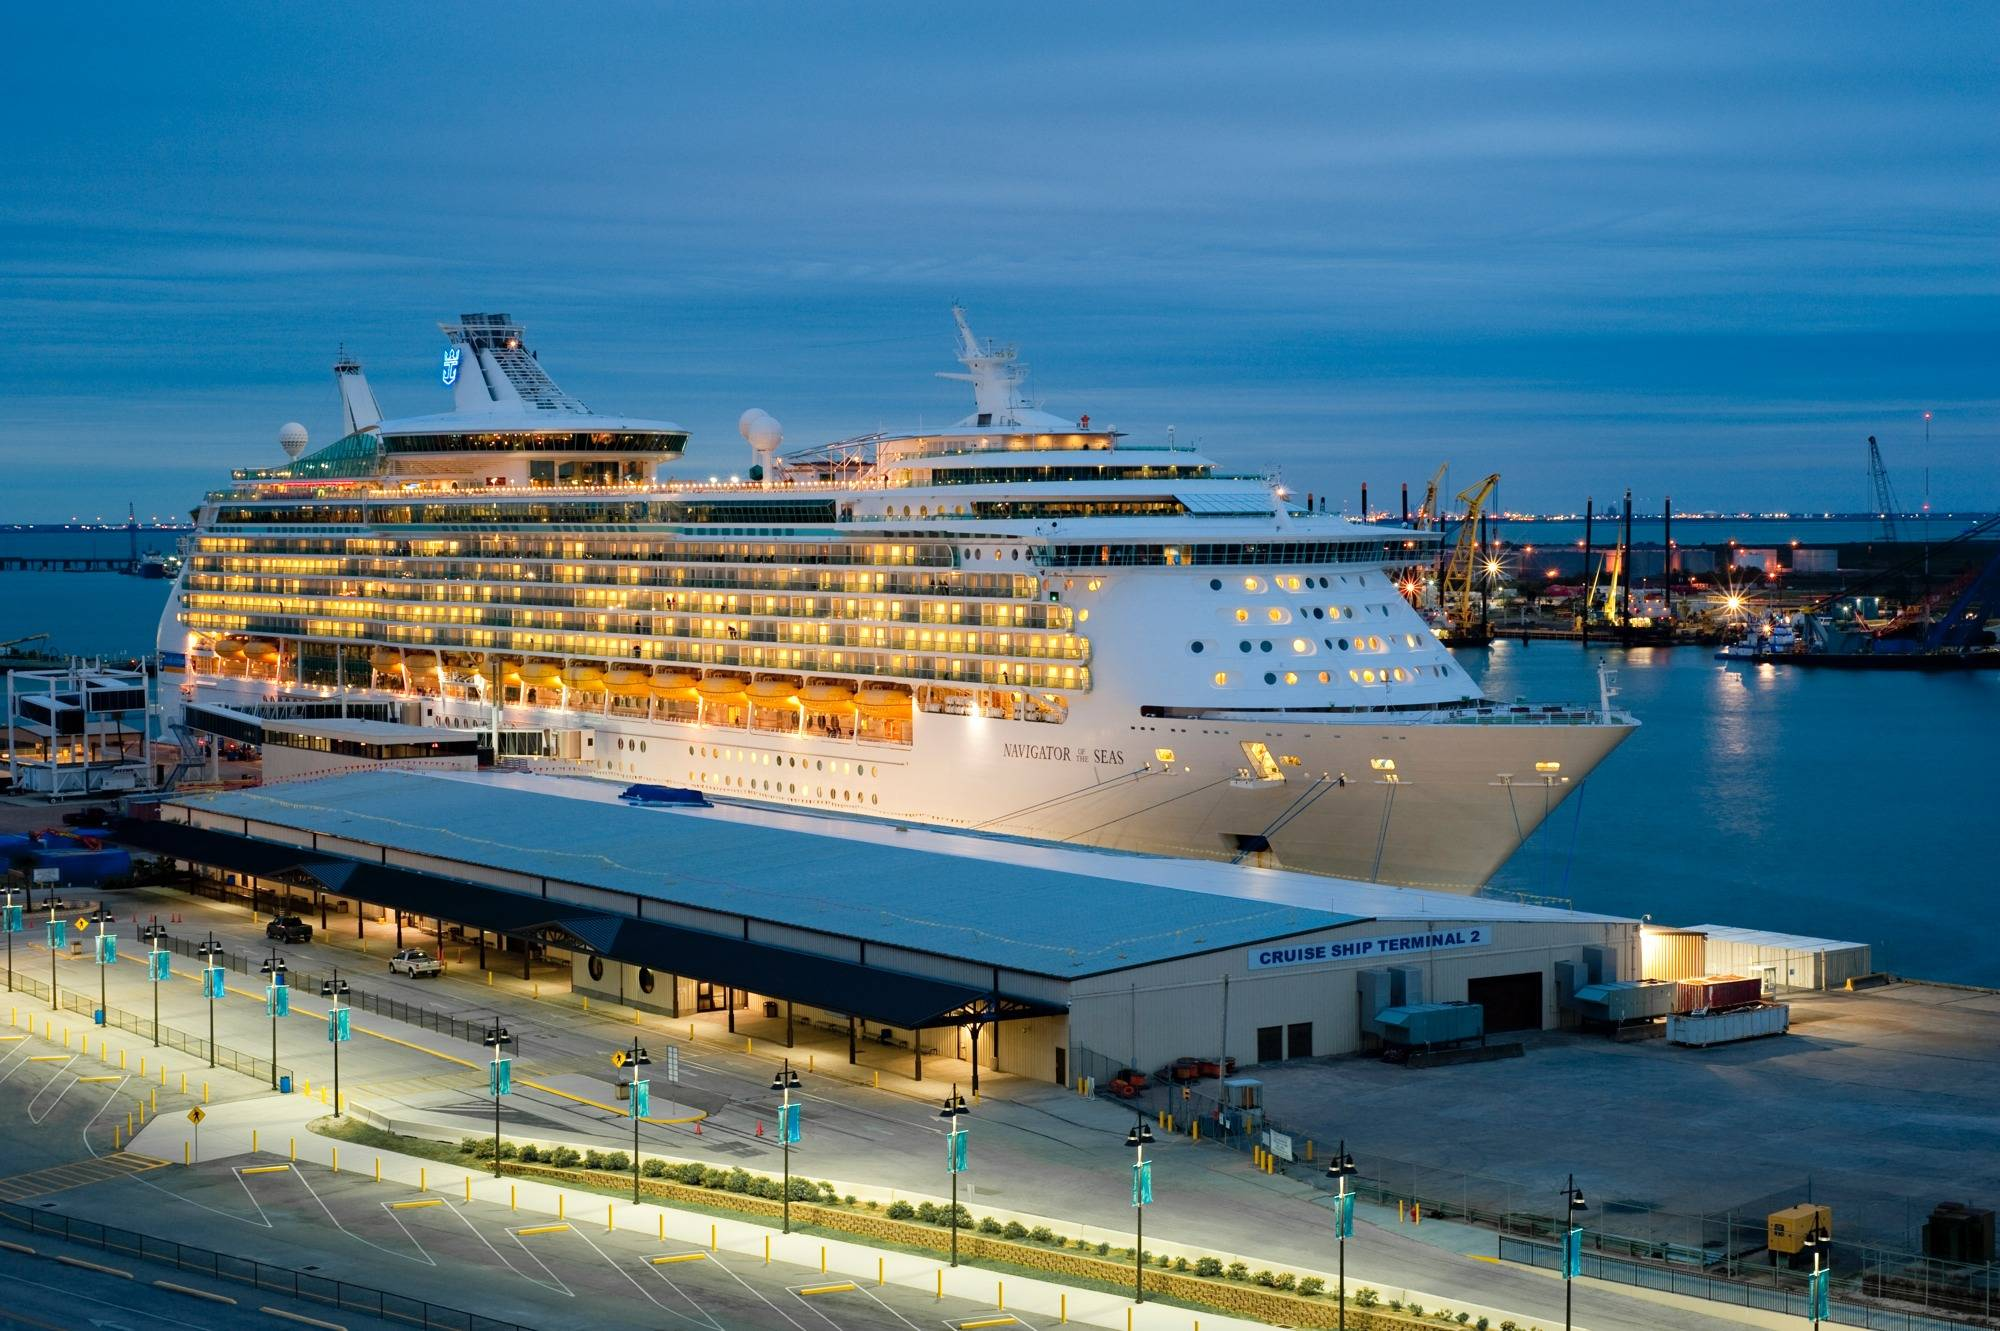 Port Of Galveston Signs 5-Year Cruise Ship Deal